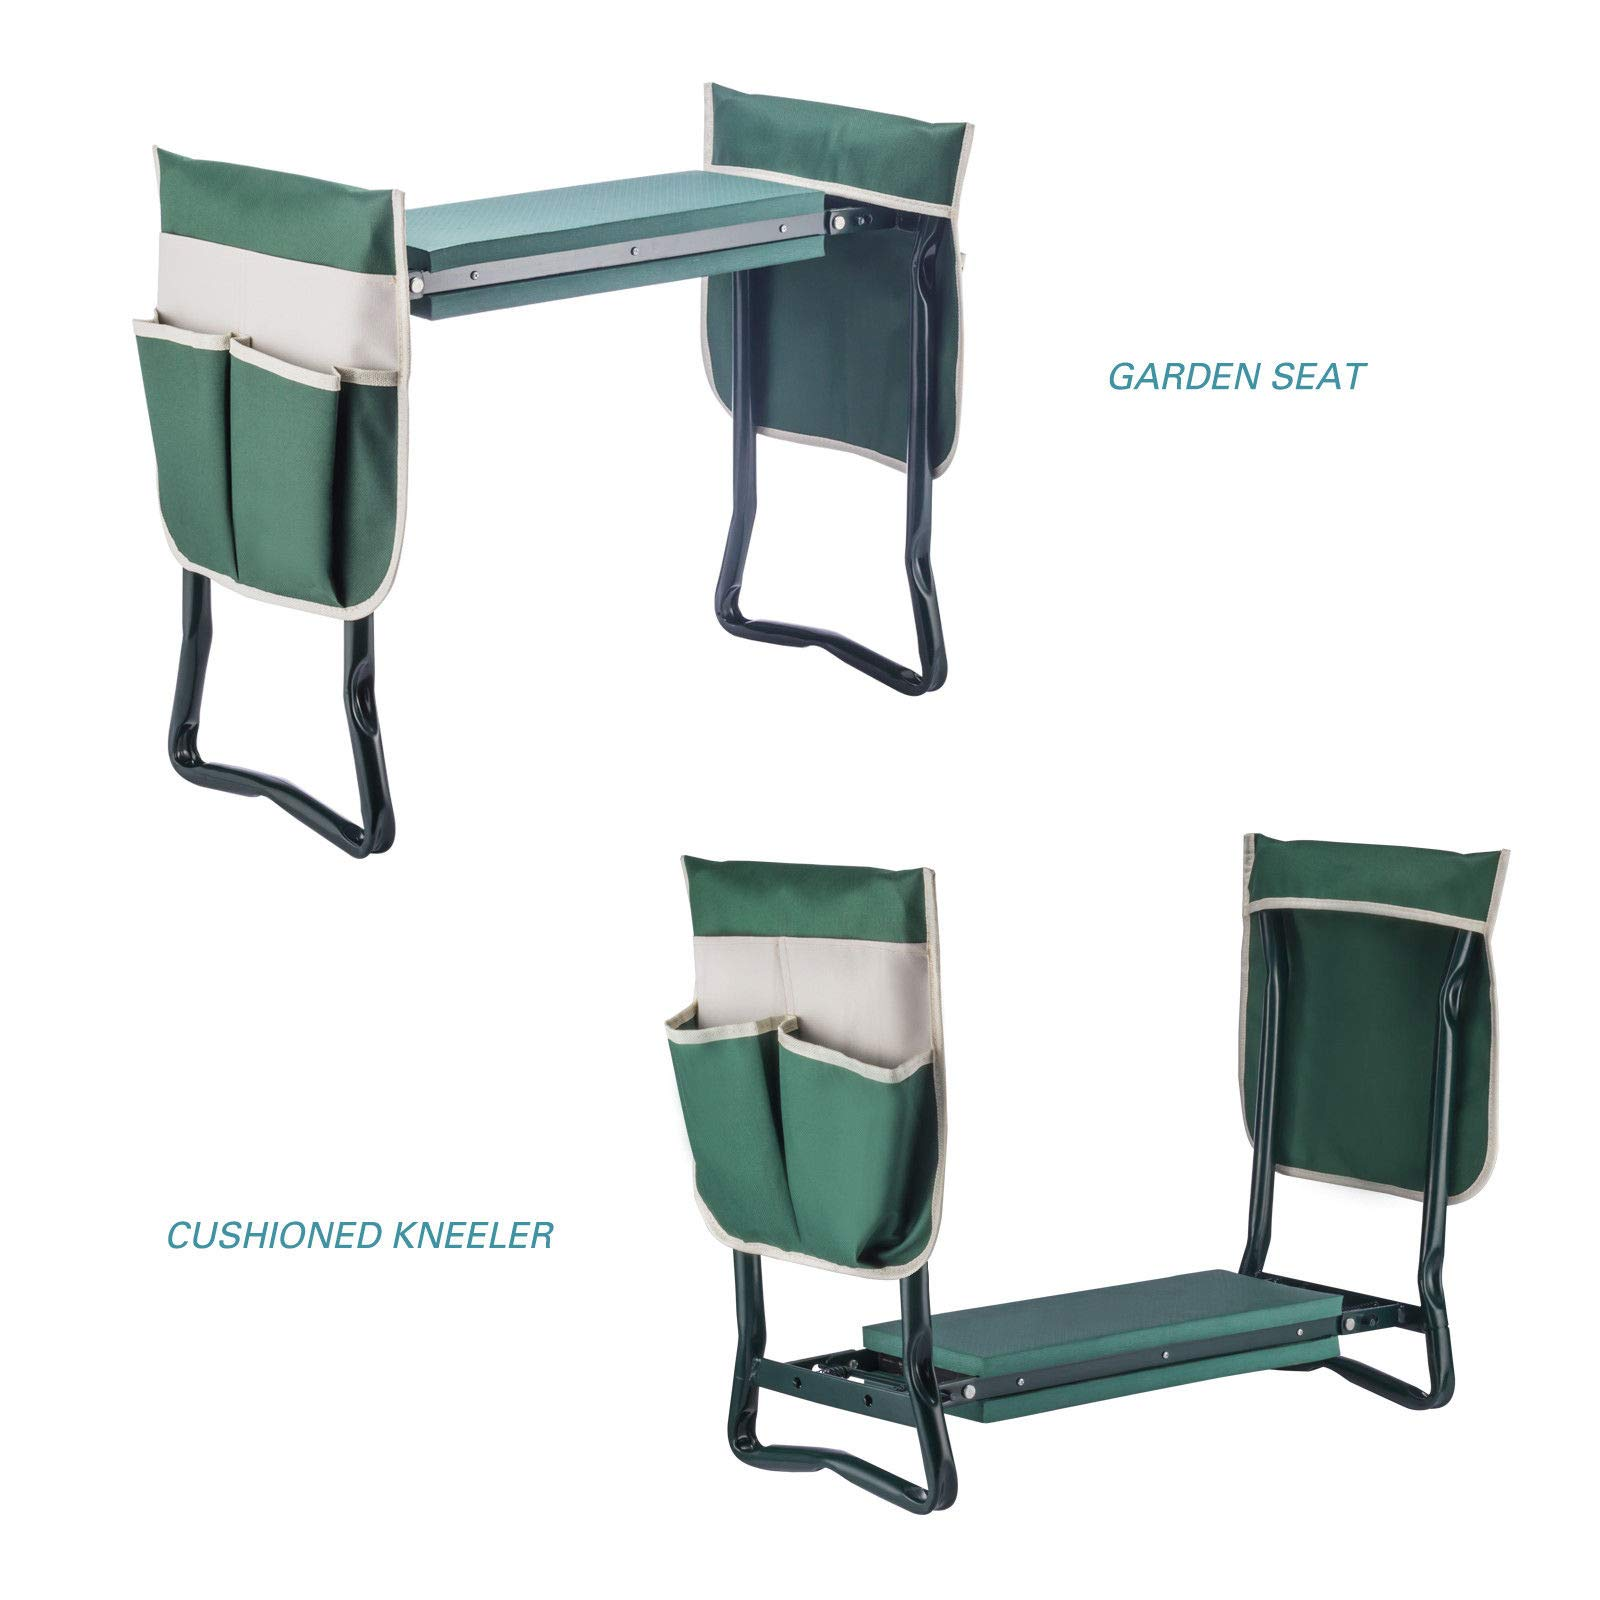 YANEE Foldable Kneeler Garden Bench Stool Soft Cushion Seat Pad Cushion Kneeling, Tool Pouch, Material: Steel Pipe, EVA, Dimensions: 22 3/4'' W × 11'' D × 19 1/3'' H by YANEE (Image #7)